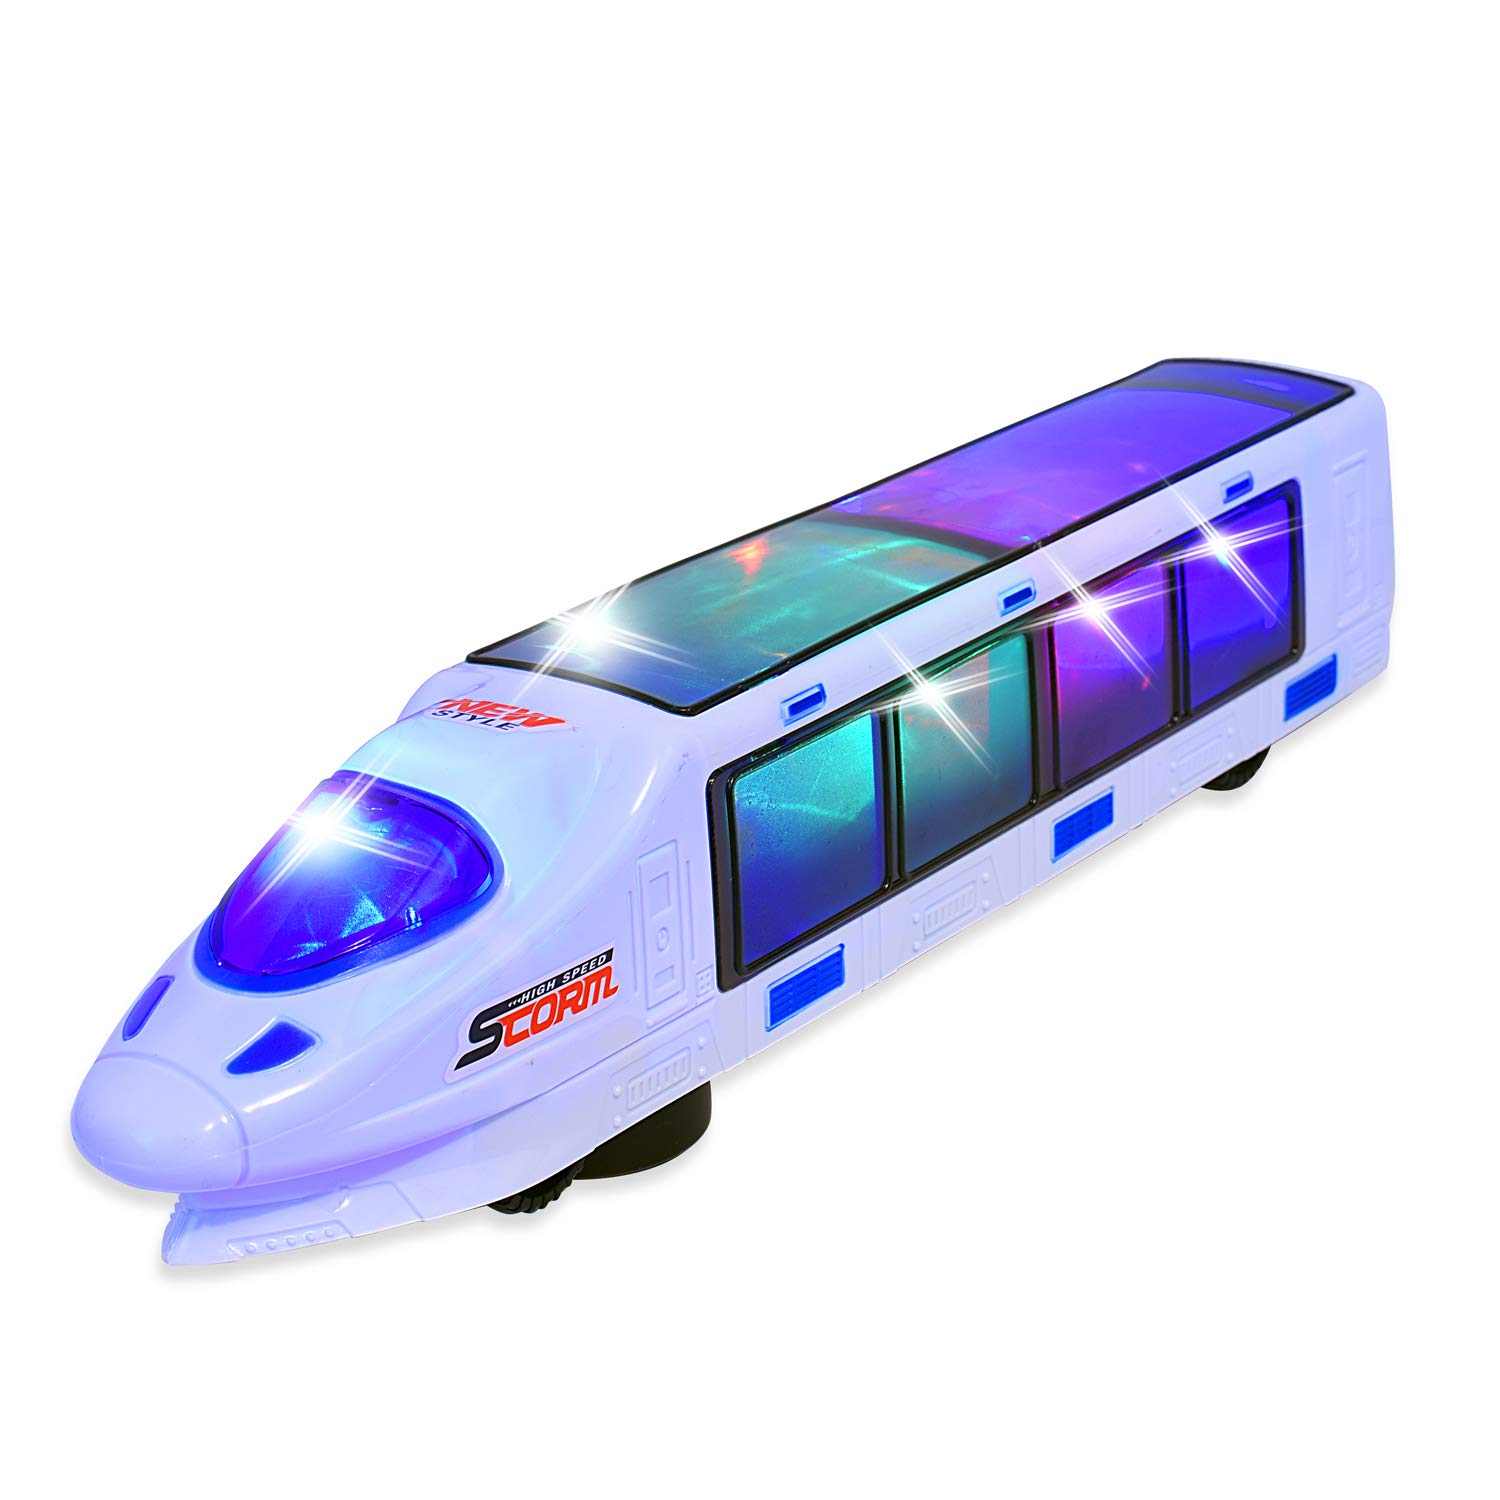 WolVol Beautiful 3D Lightning Electric Train Toy for Kids with Music, goes Around and Changes Directions on Contact by WolVol